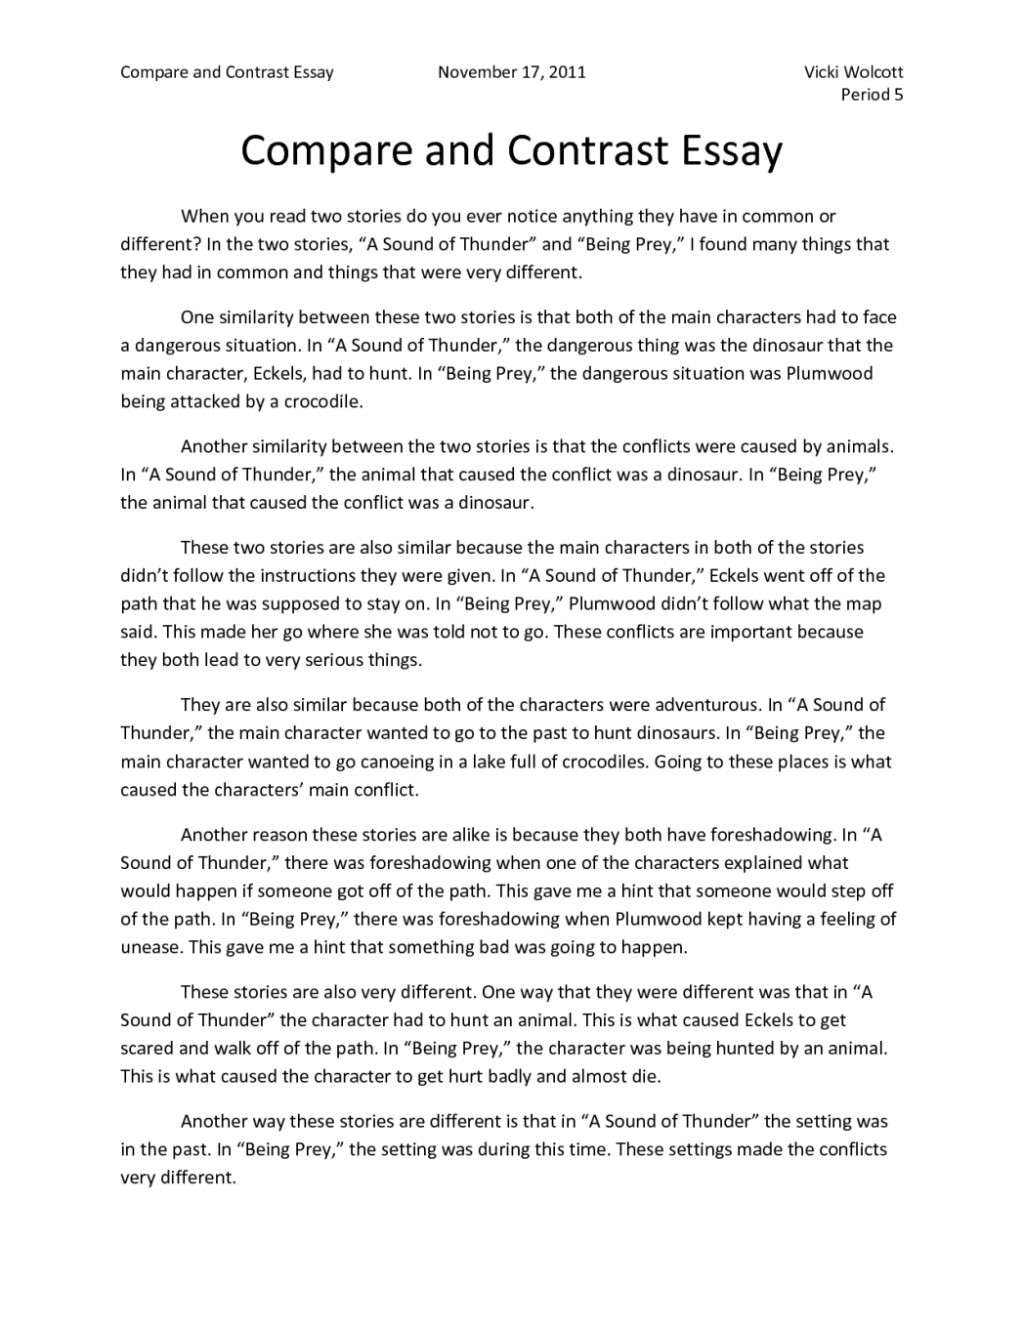 004 Argumentative Essay Topic Ideas Causal Topics Compare And Contrast For Argument Or Position 1048x1356 Surprising Middle School College Large